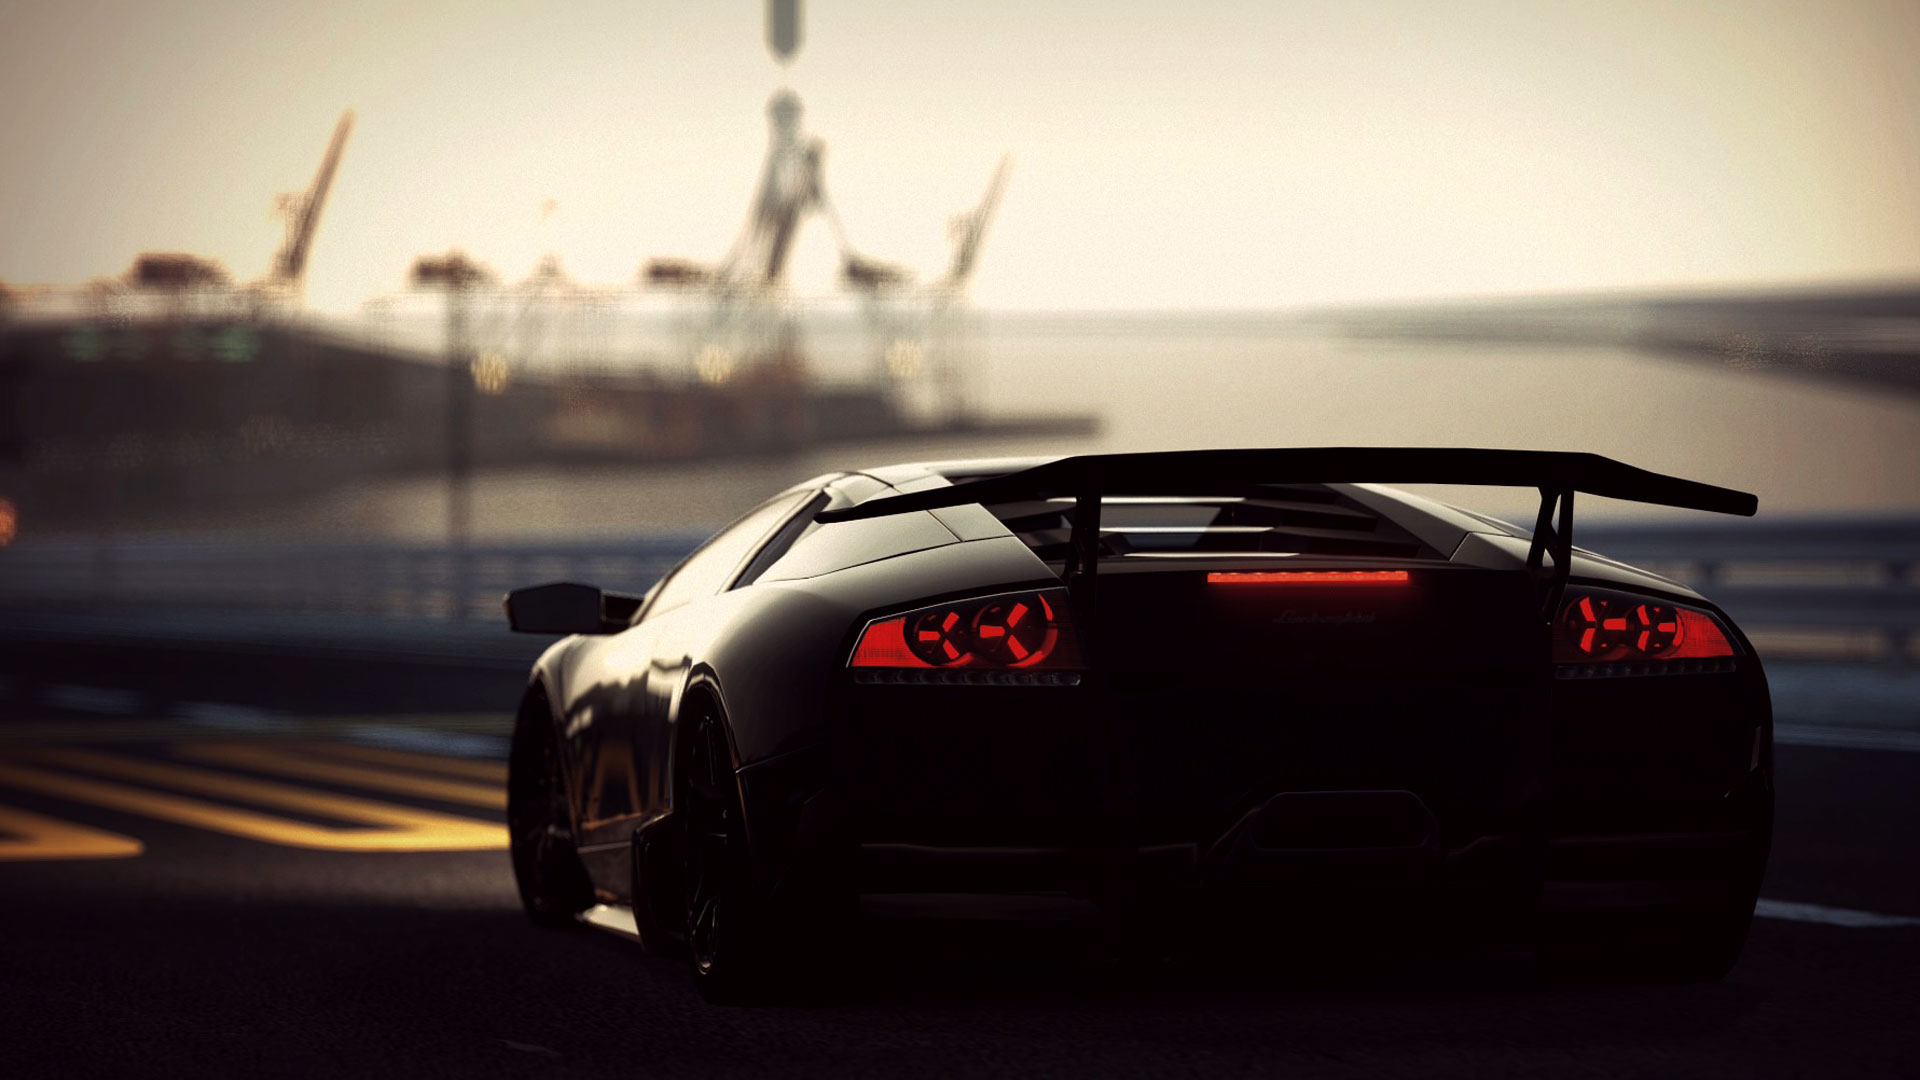 Lamborghini Aventador Cars Wallpapers Lamborghini Dark Wallpapers Hd Pixelstalk Net